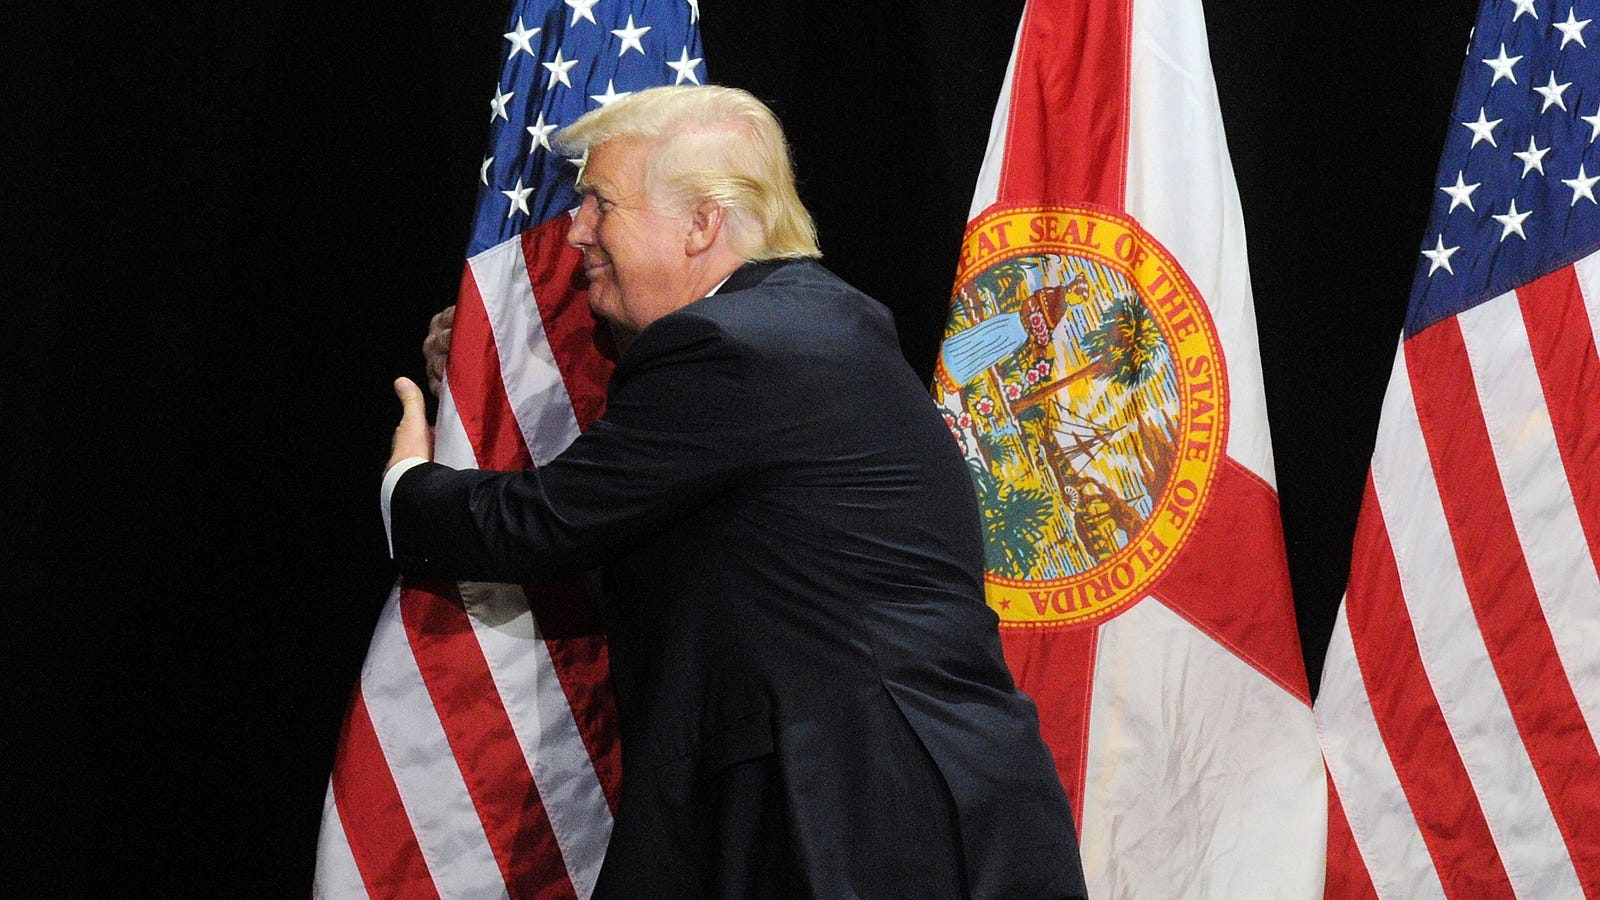 An Exclusive Interview With the American Flag, You Know, the One the President Keeps Stroking